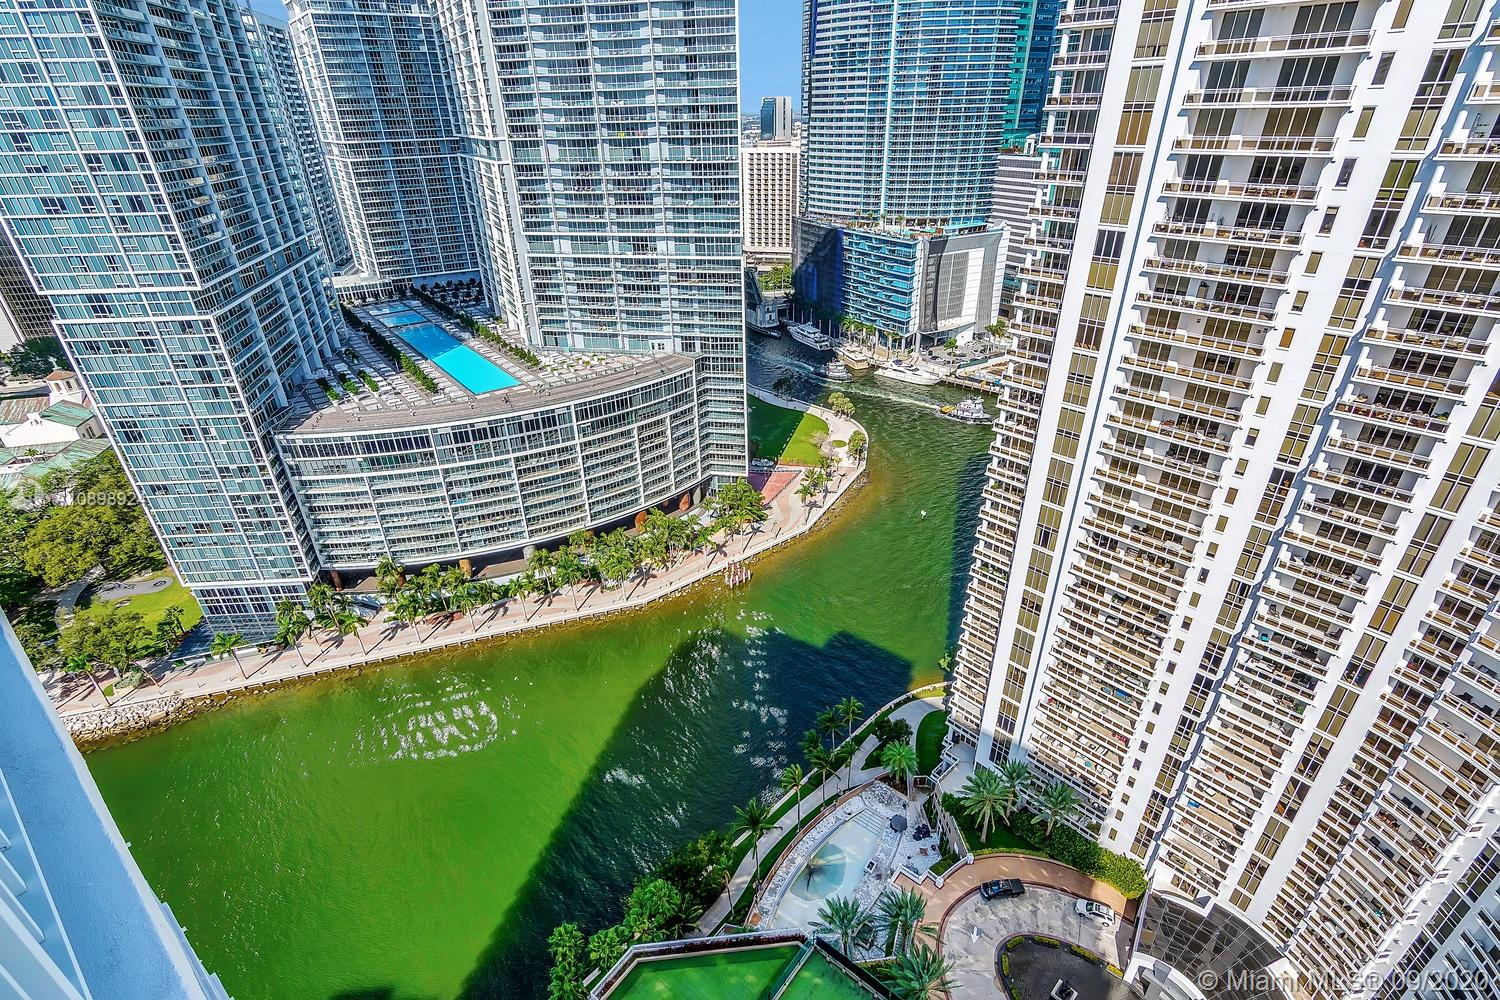 Courts Brickell Key #3308 - 801 Brickell Key Blvd #3308, Miami, FL 33131